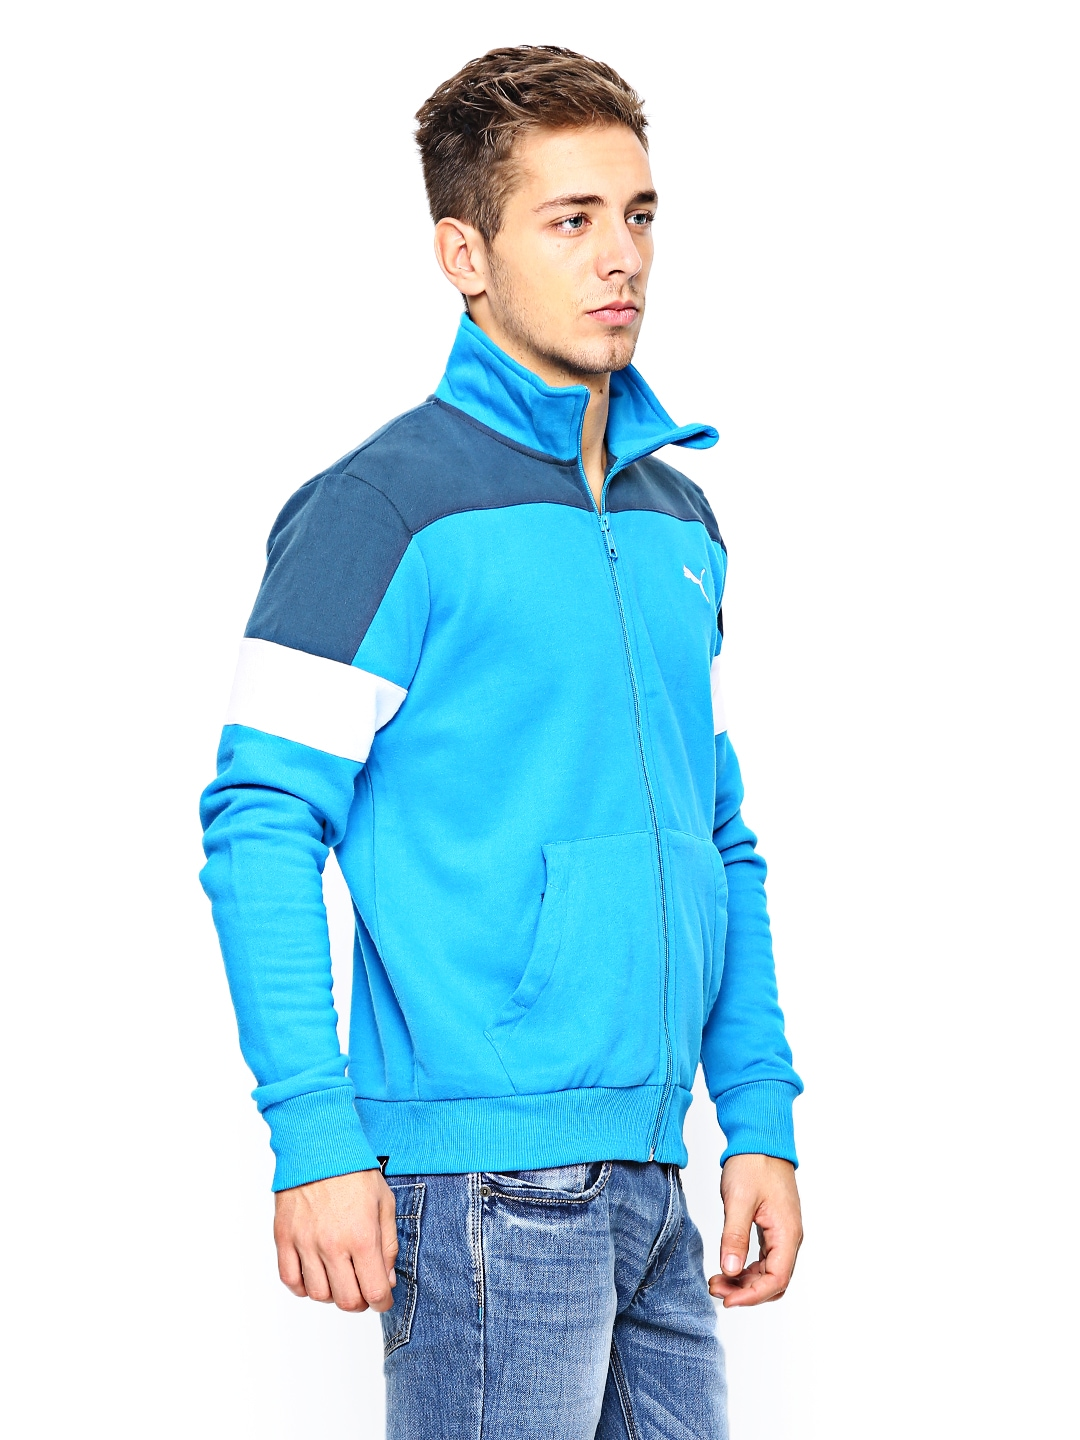 d80a43419938 Buy Puma Men Blue Sports Jacket 8796988 for men online in india on Myntra  at Yebhi.com